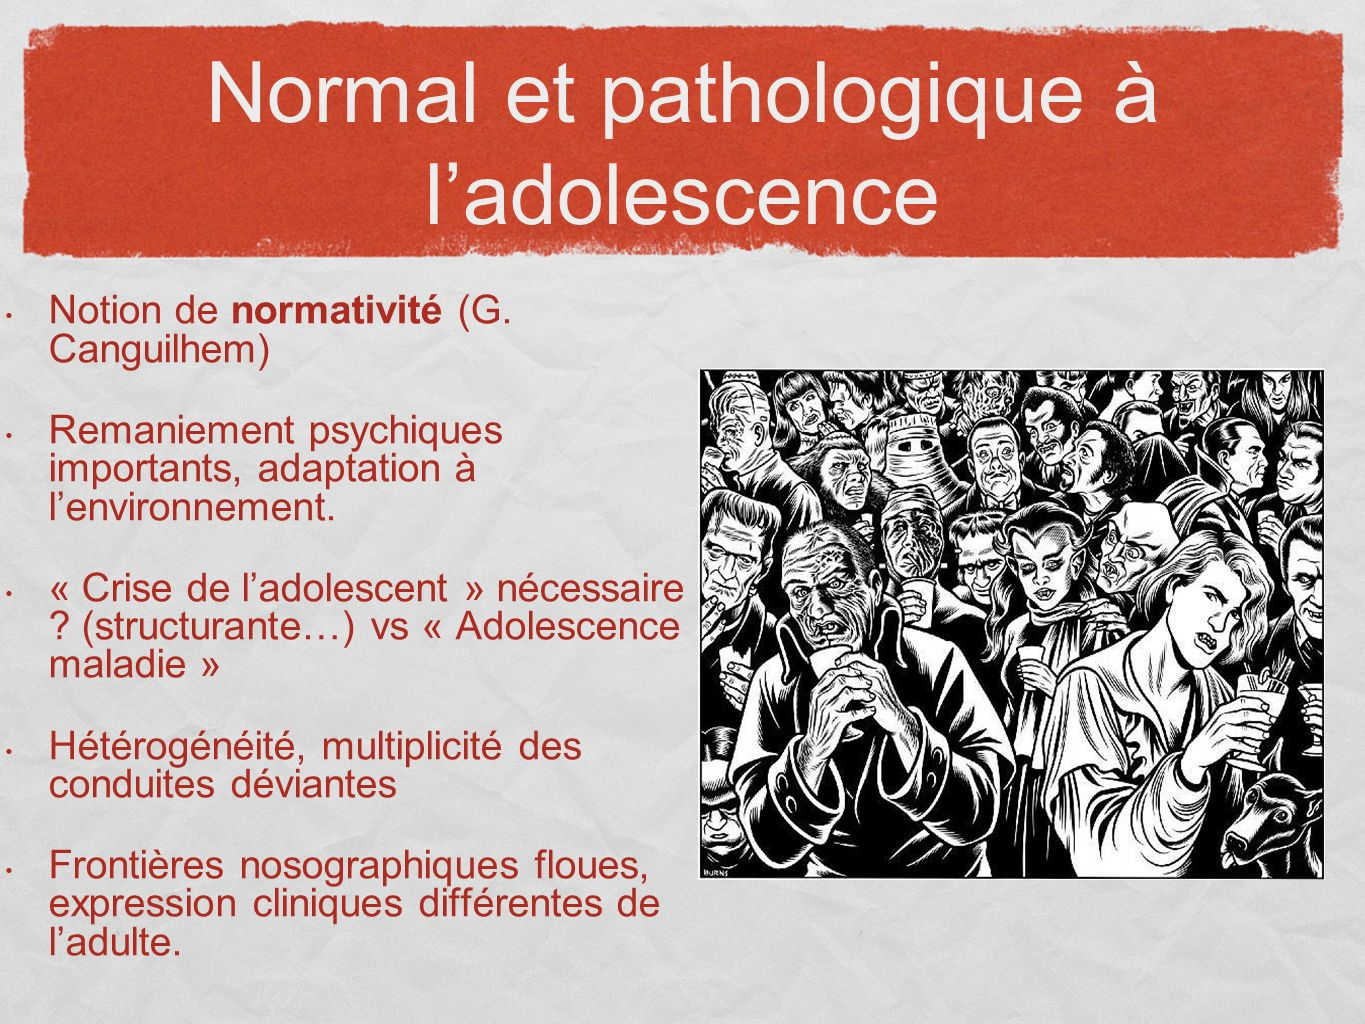 Normal et pathologique à l'adolescence